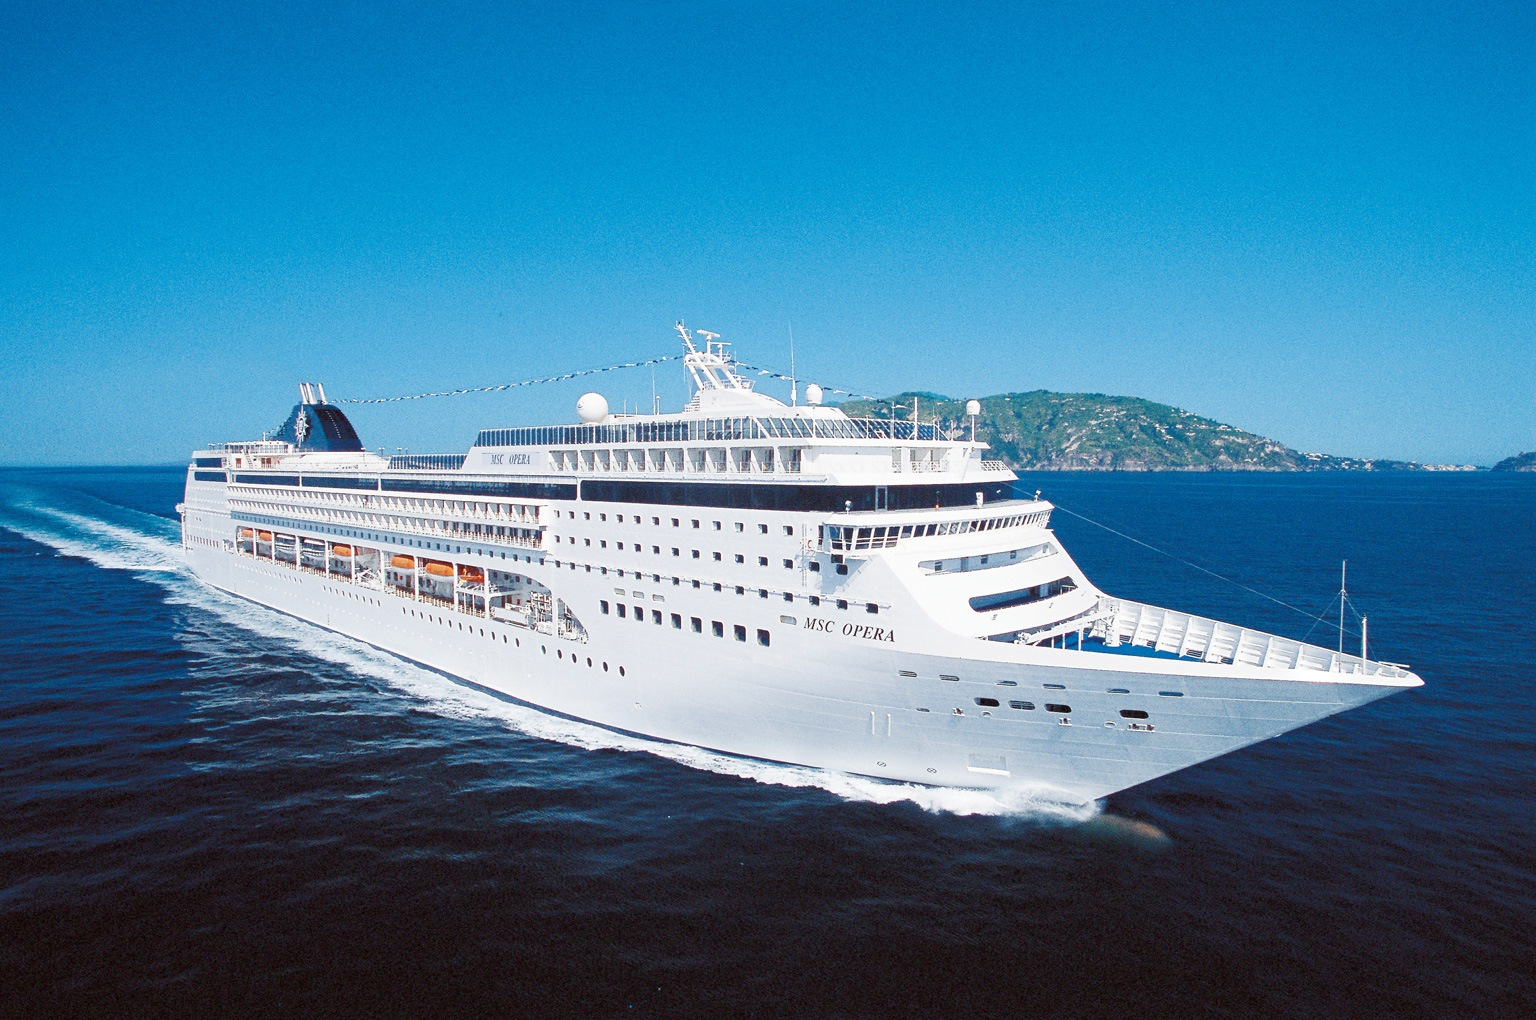 MSC Opera Cruise Ship | Reviews - Itineraries - Images